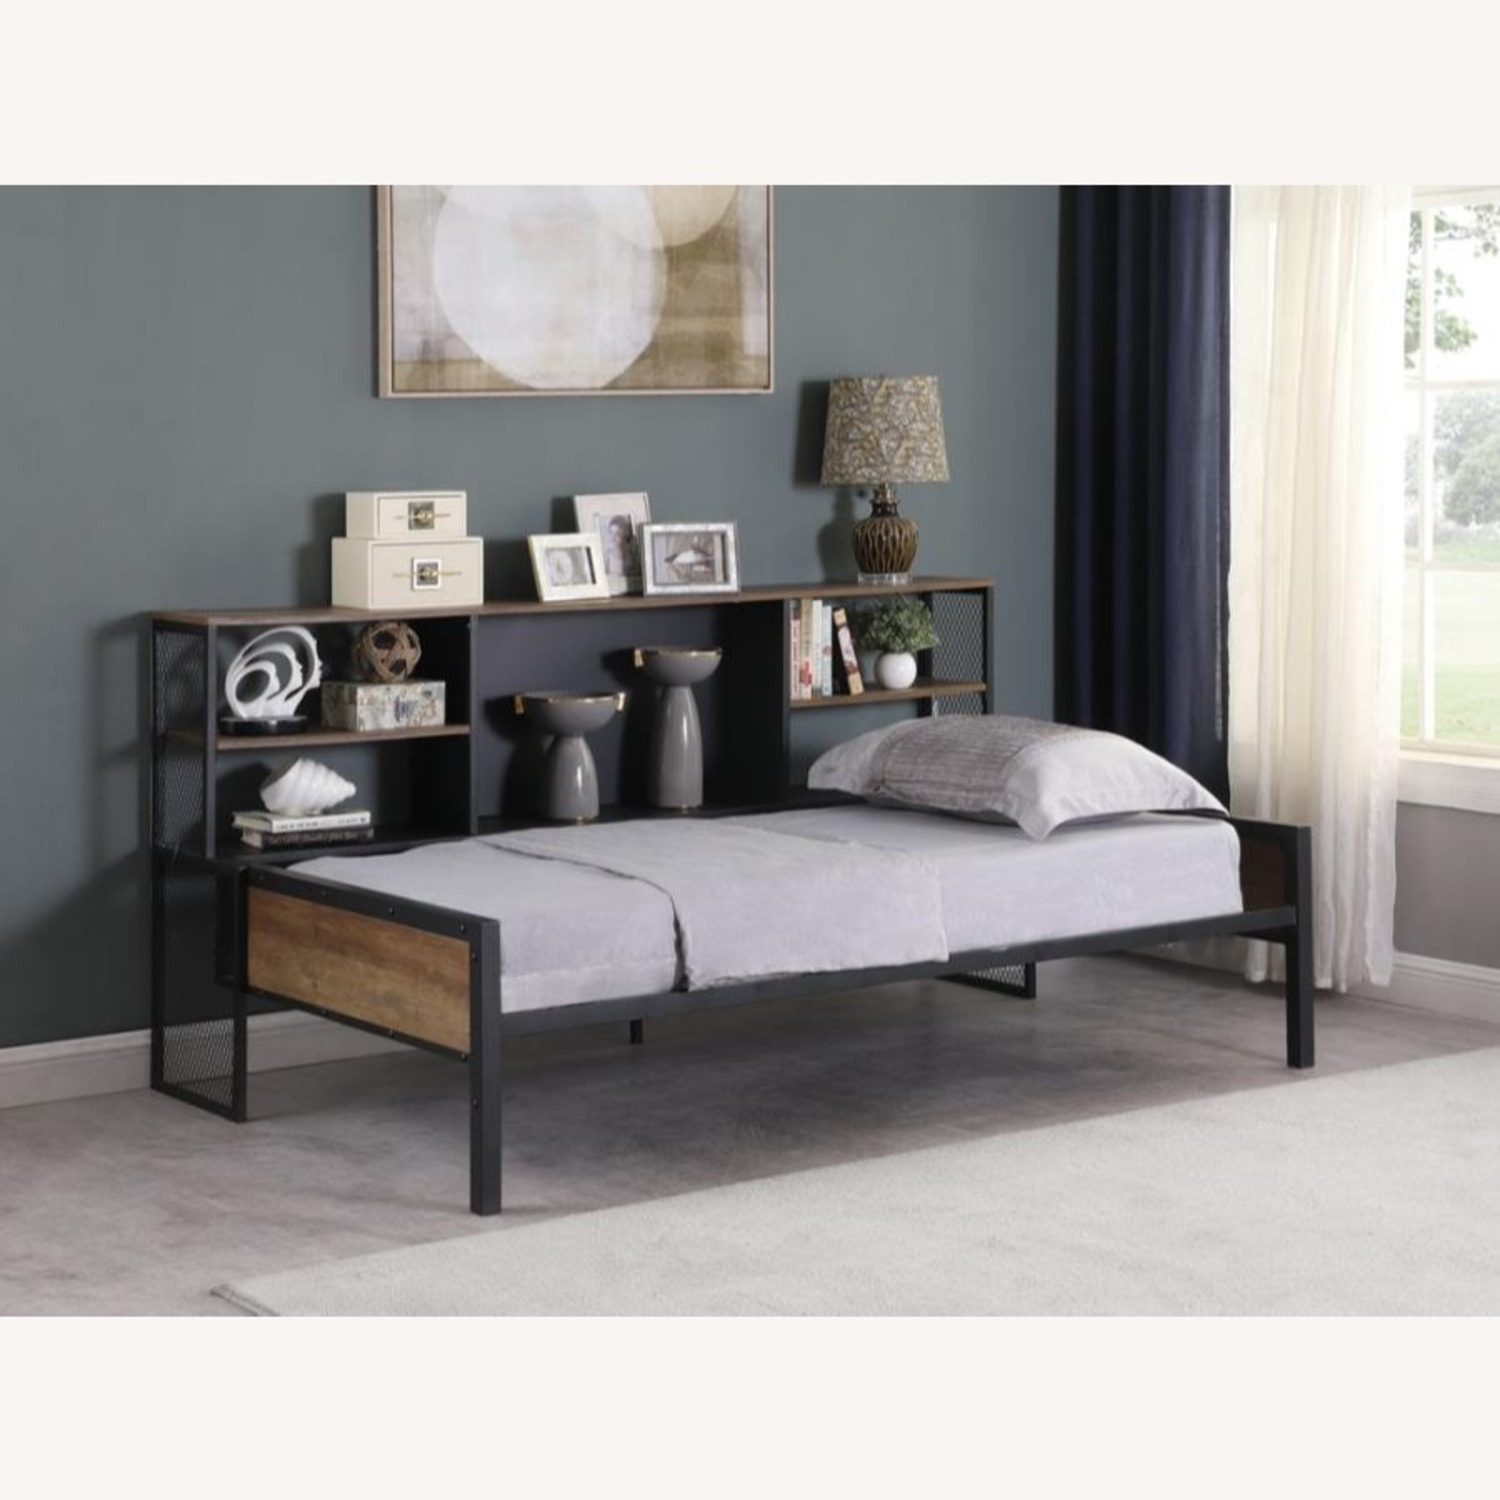 Twin Daybed In Chestnut & Matte Black Finish - image-5